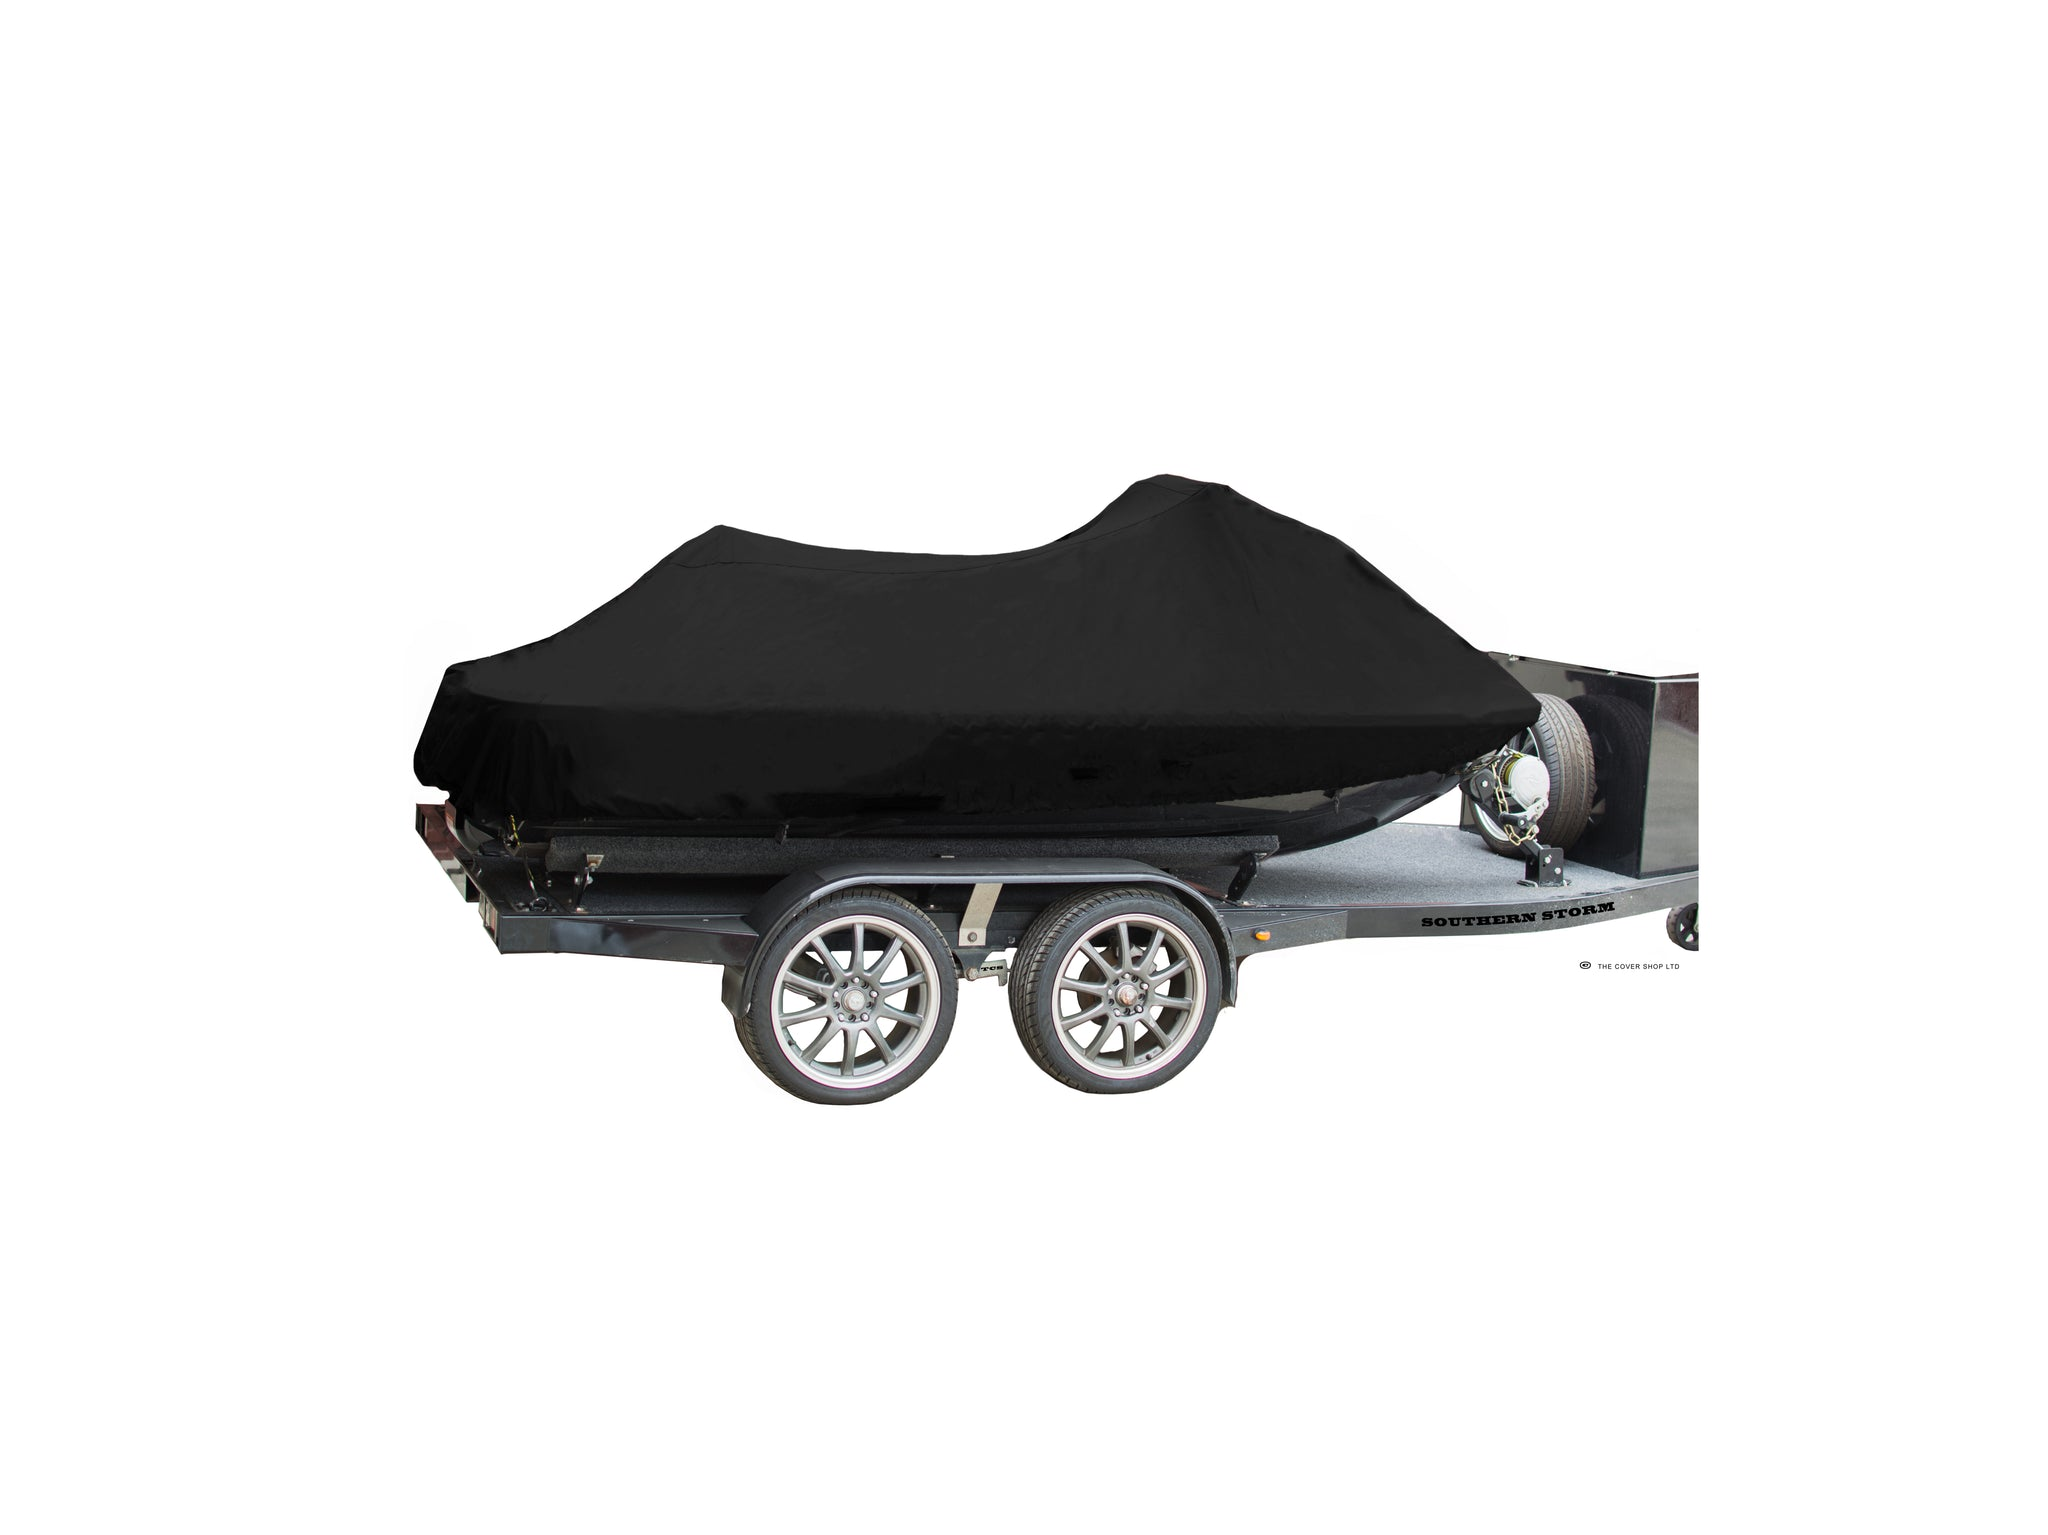 Jet Ski Covers Direct from The Cover Shop NZ